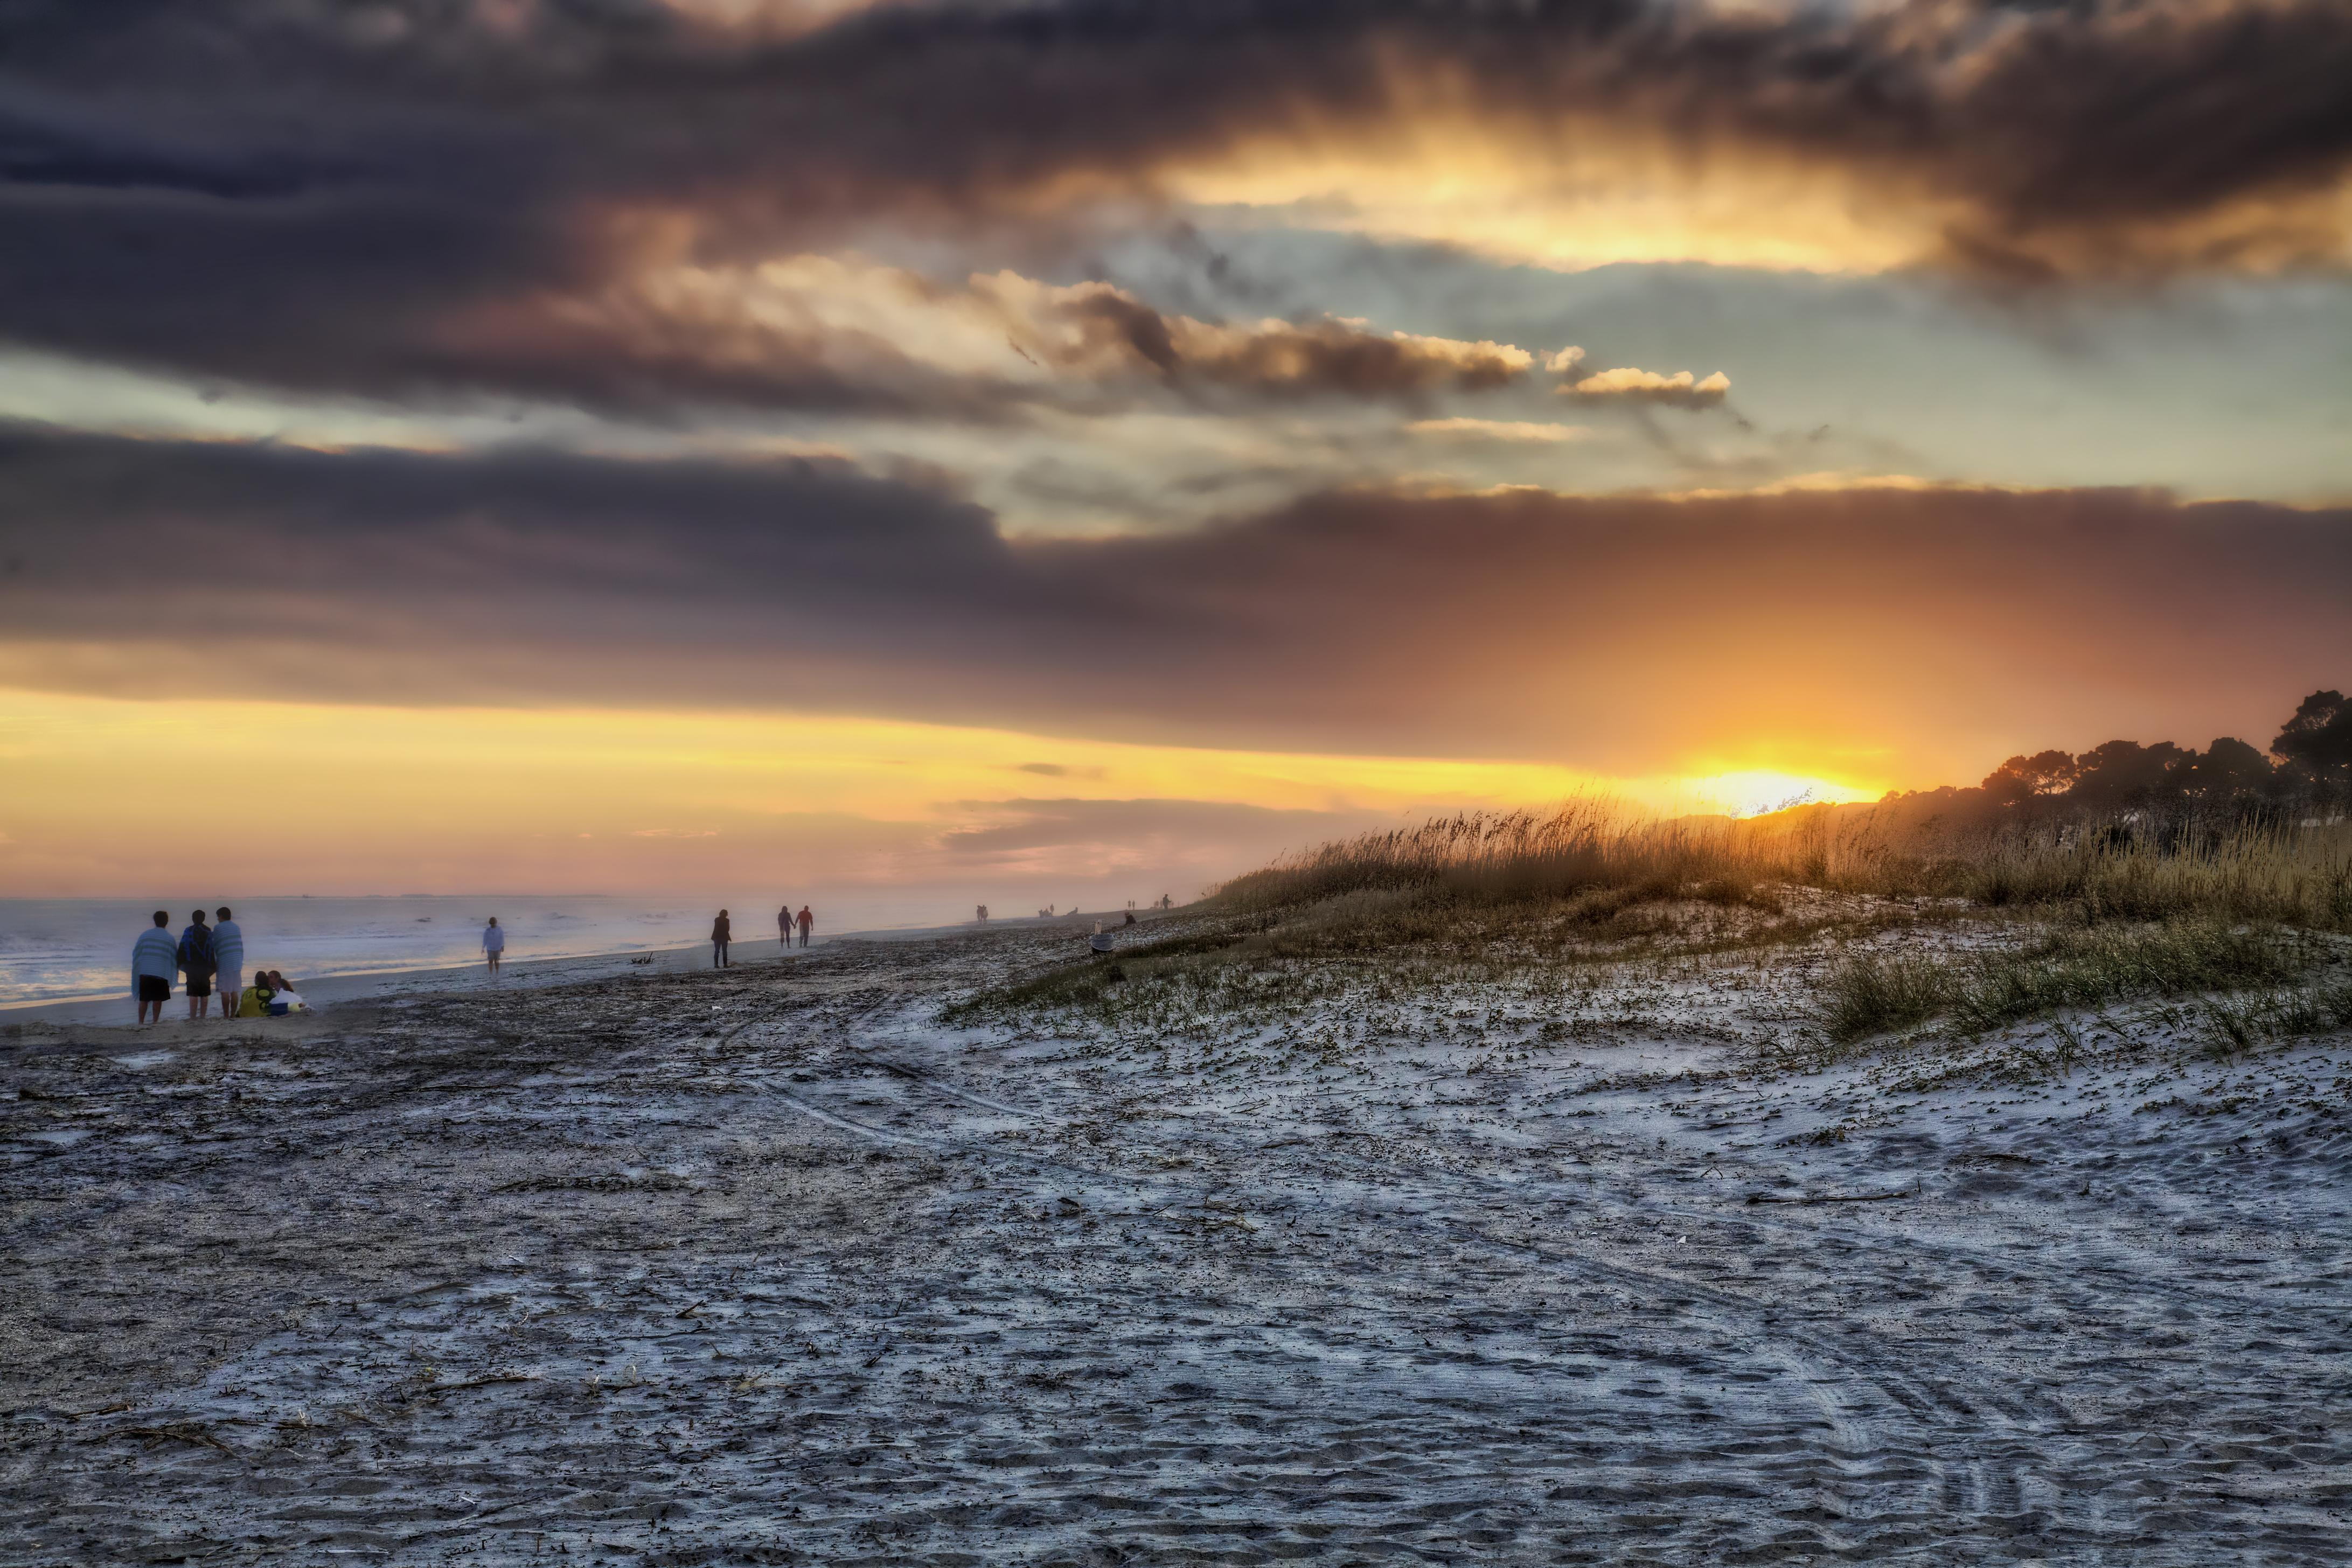 Enjoy the magical sunsets of Hilton Head.